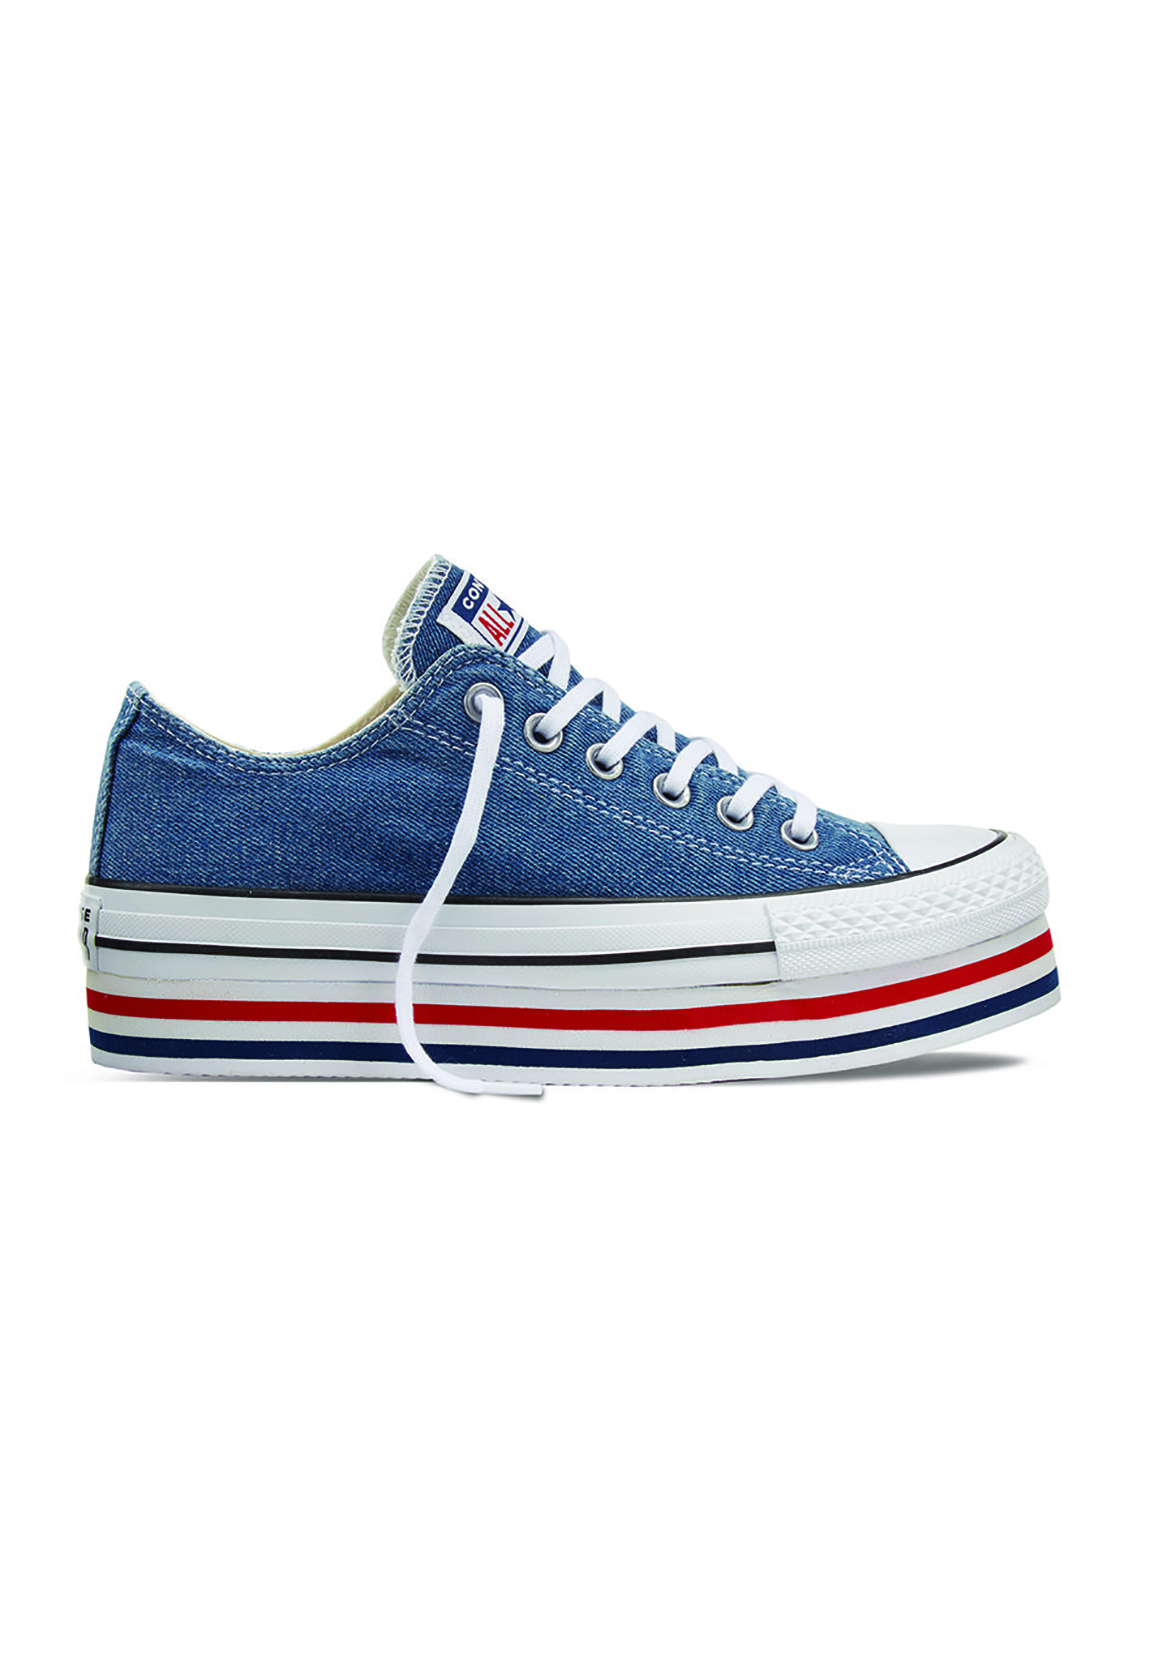 bea8bf65 Details about Converse Chucks Ct as Platform Layer Ox 563973C Blue